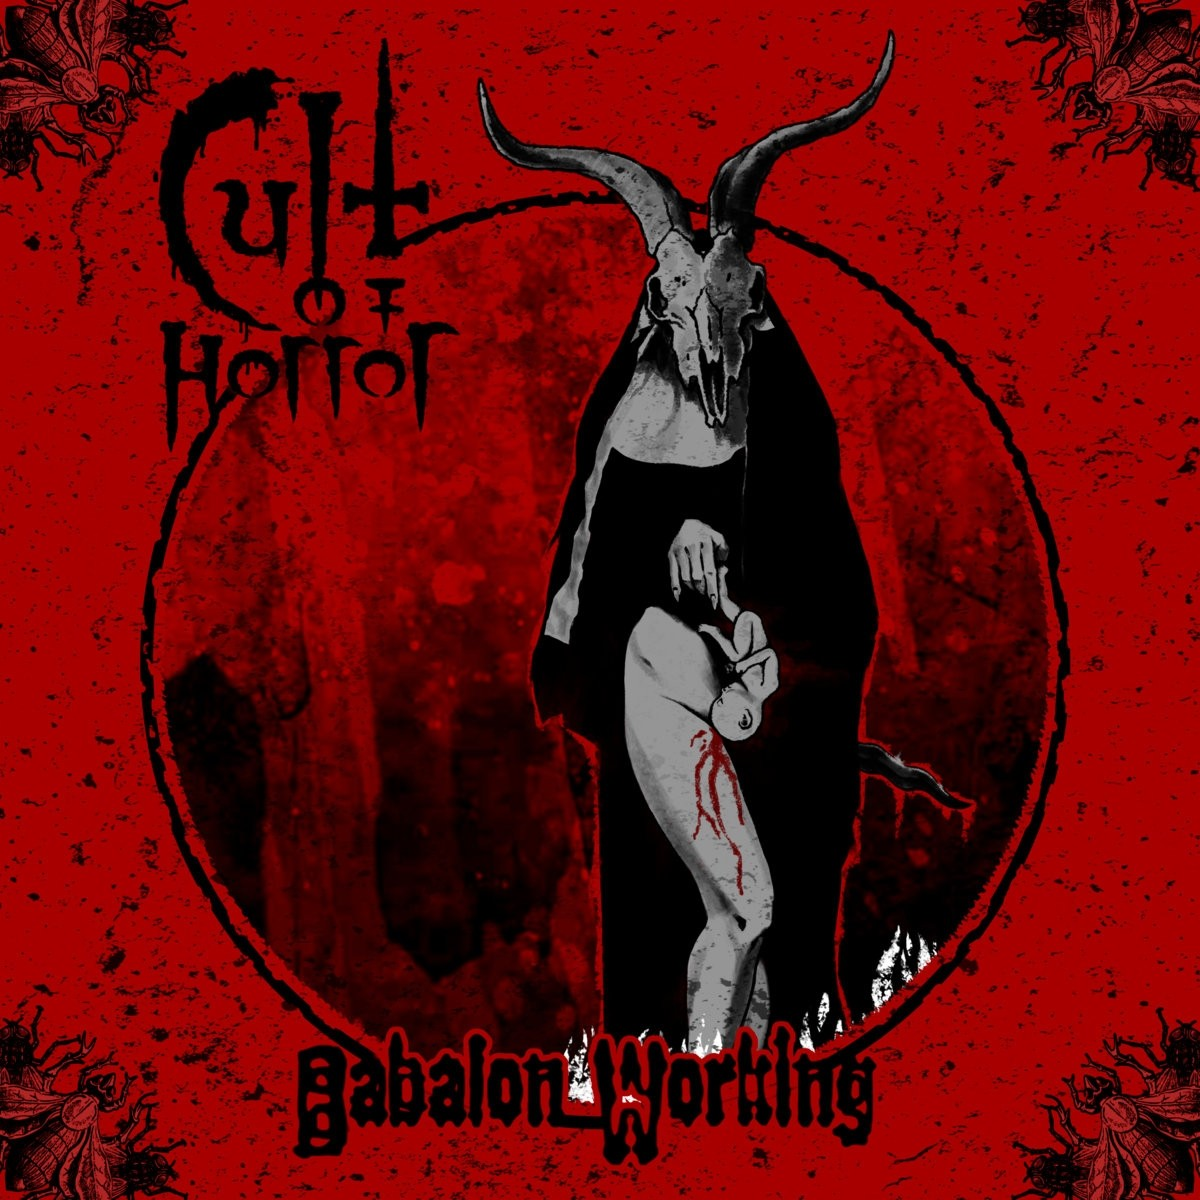 Cult of Horror - Babalon Working